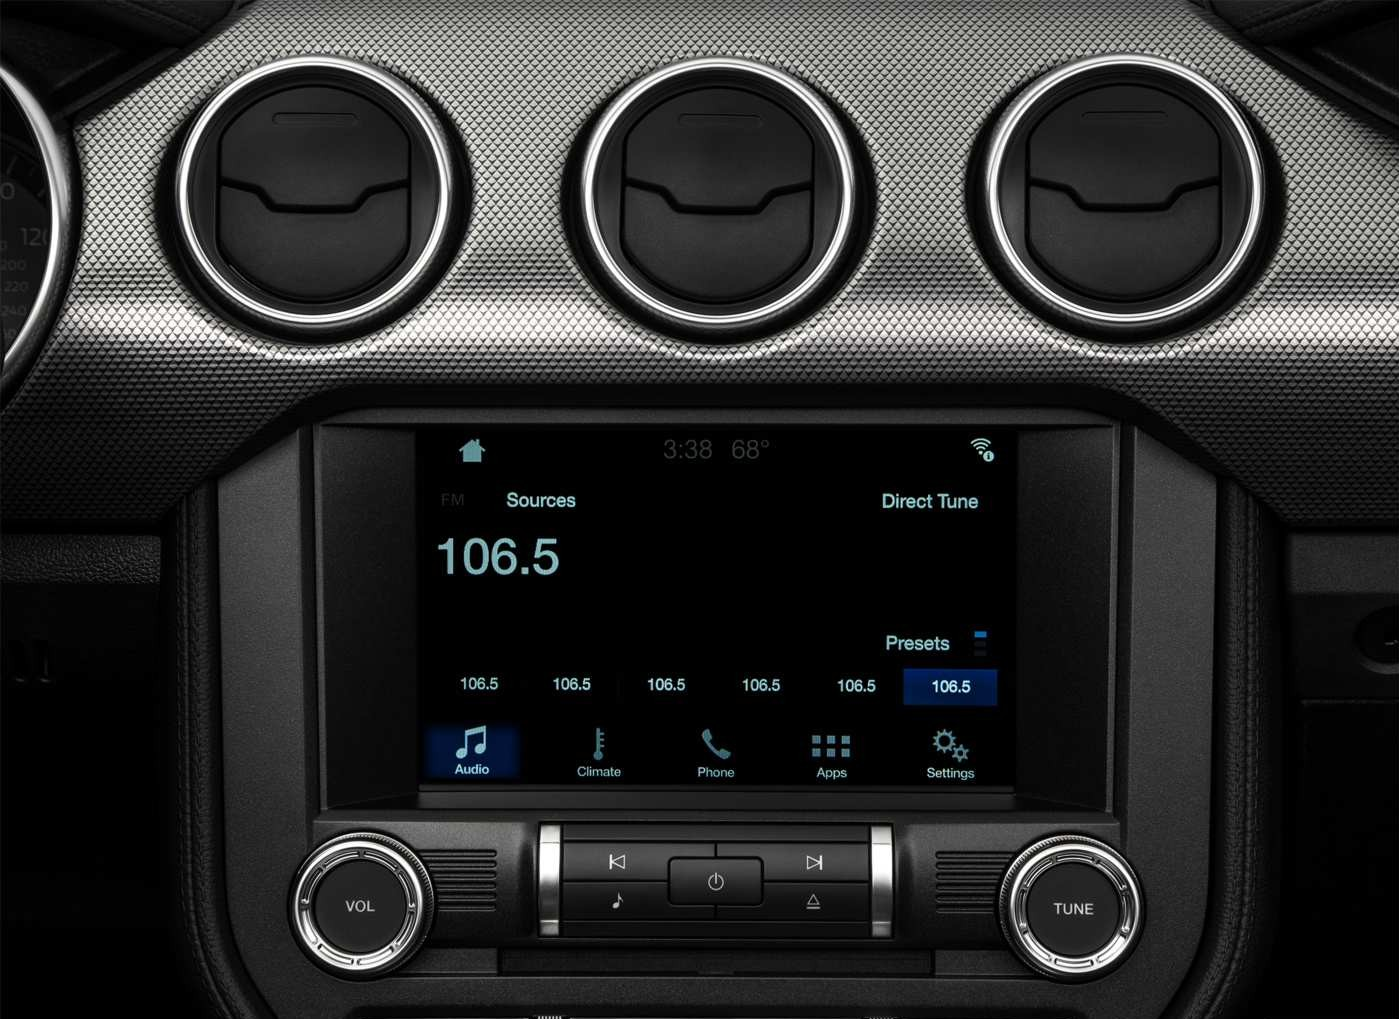 2019 Ford Mustang Ecoboost Infotainment Screen